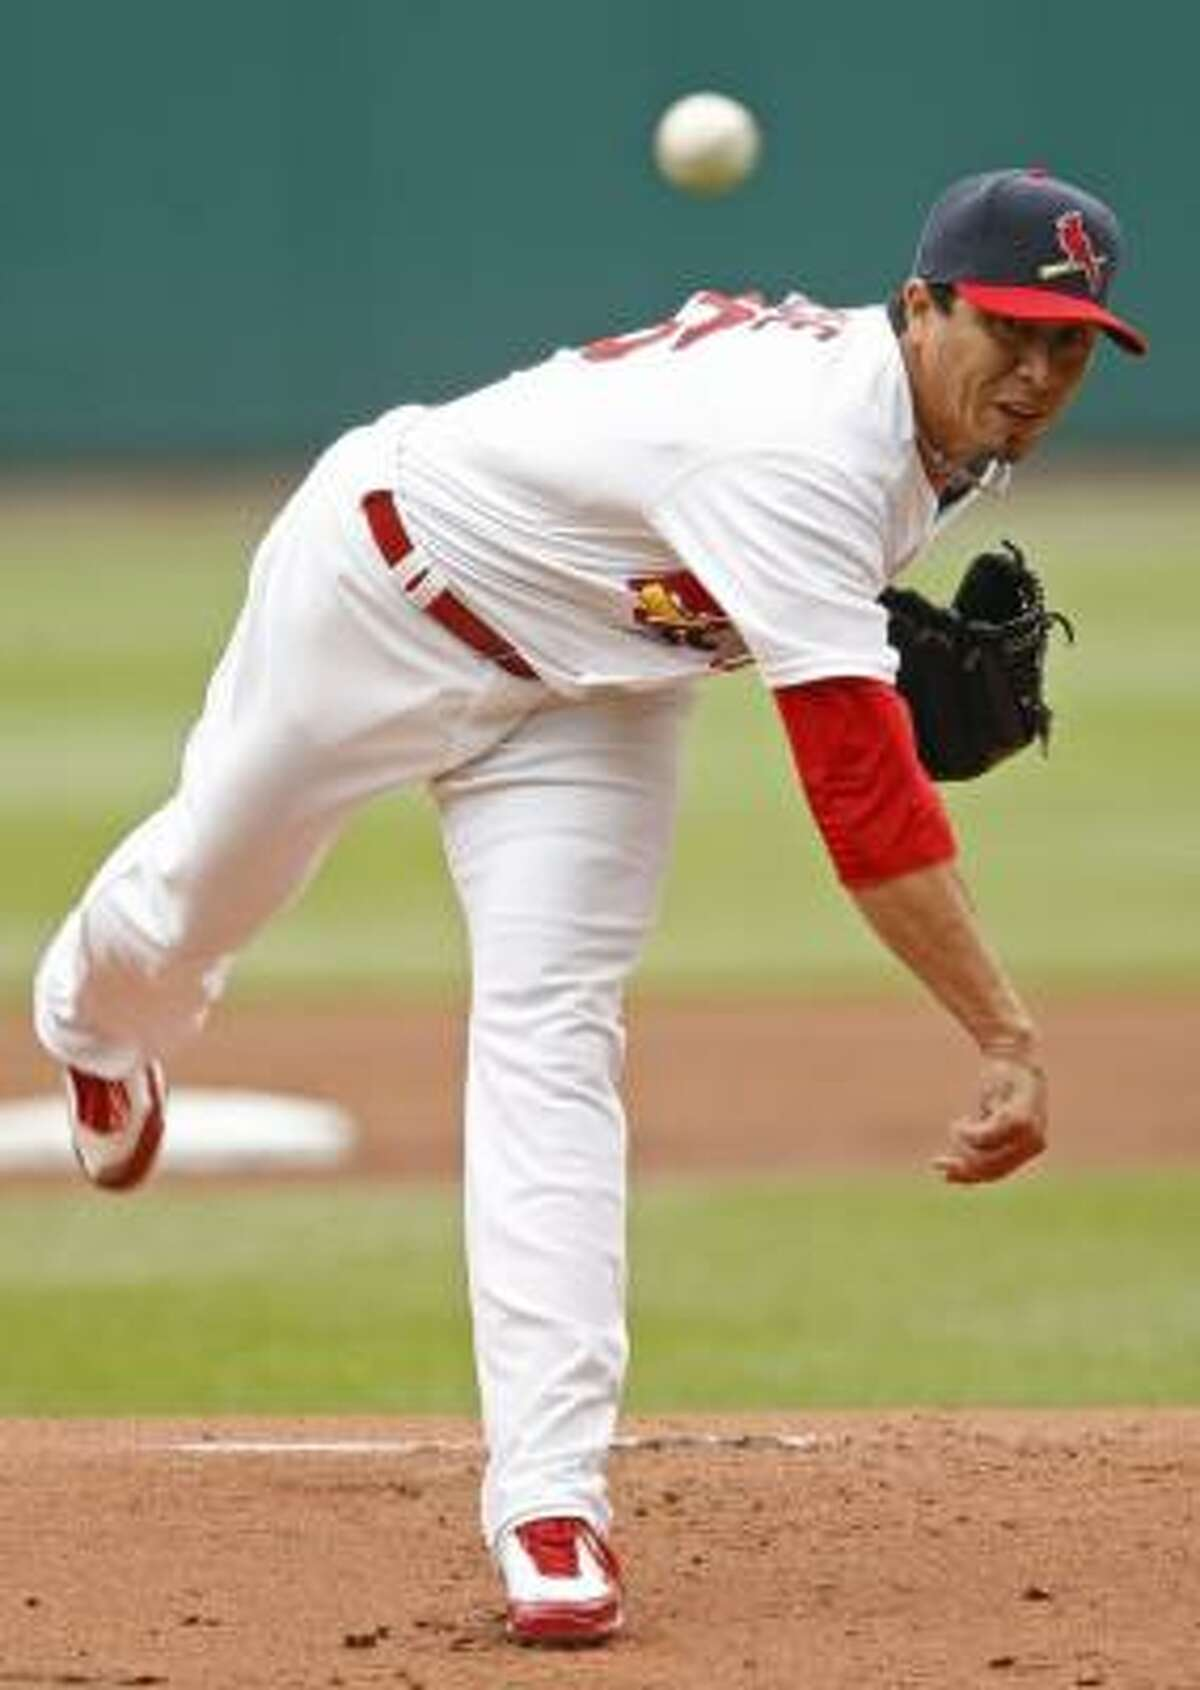 St. Louis' Kyle Lohse retired 24 consecutive Astros as the Cardinals completed the sweep with a 3-0 win.